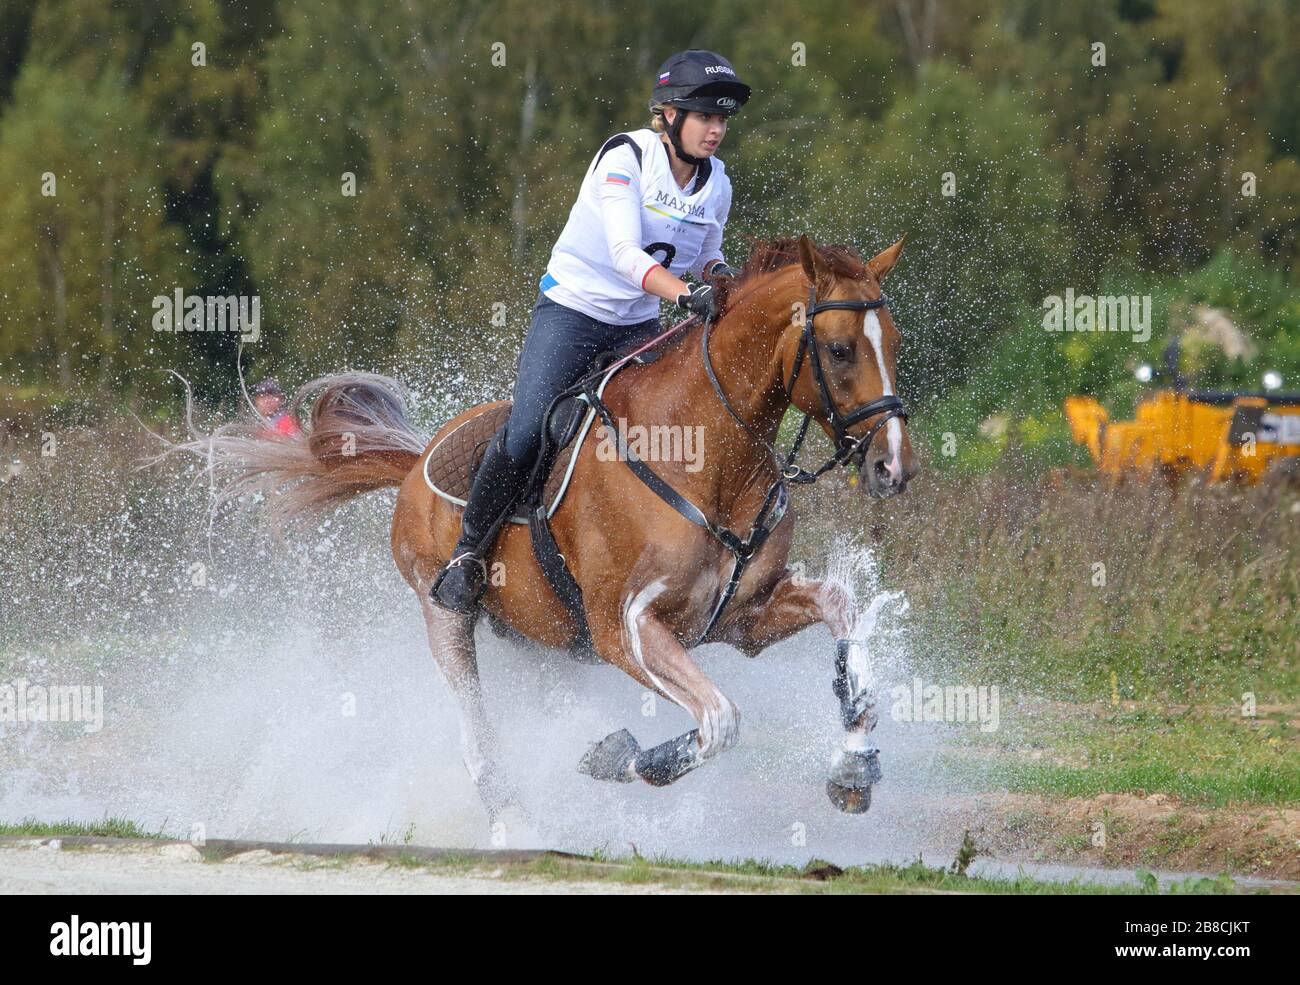 A Young Rider Canters Her Spirited Chestnut Horse Through A Cross Country Water Jump At An Equestrian Eventing Show Stock Photo Alamy